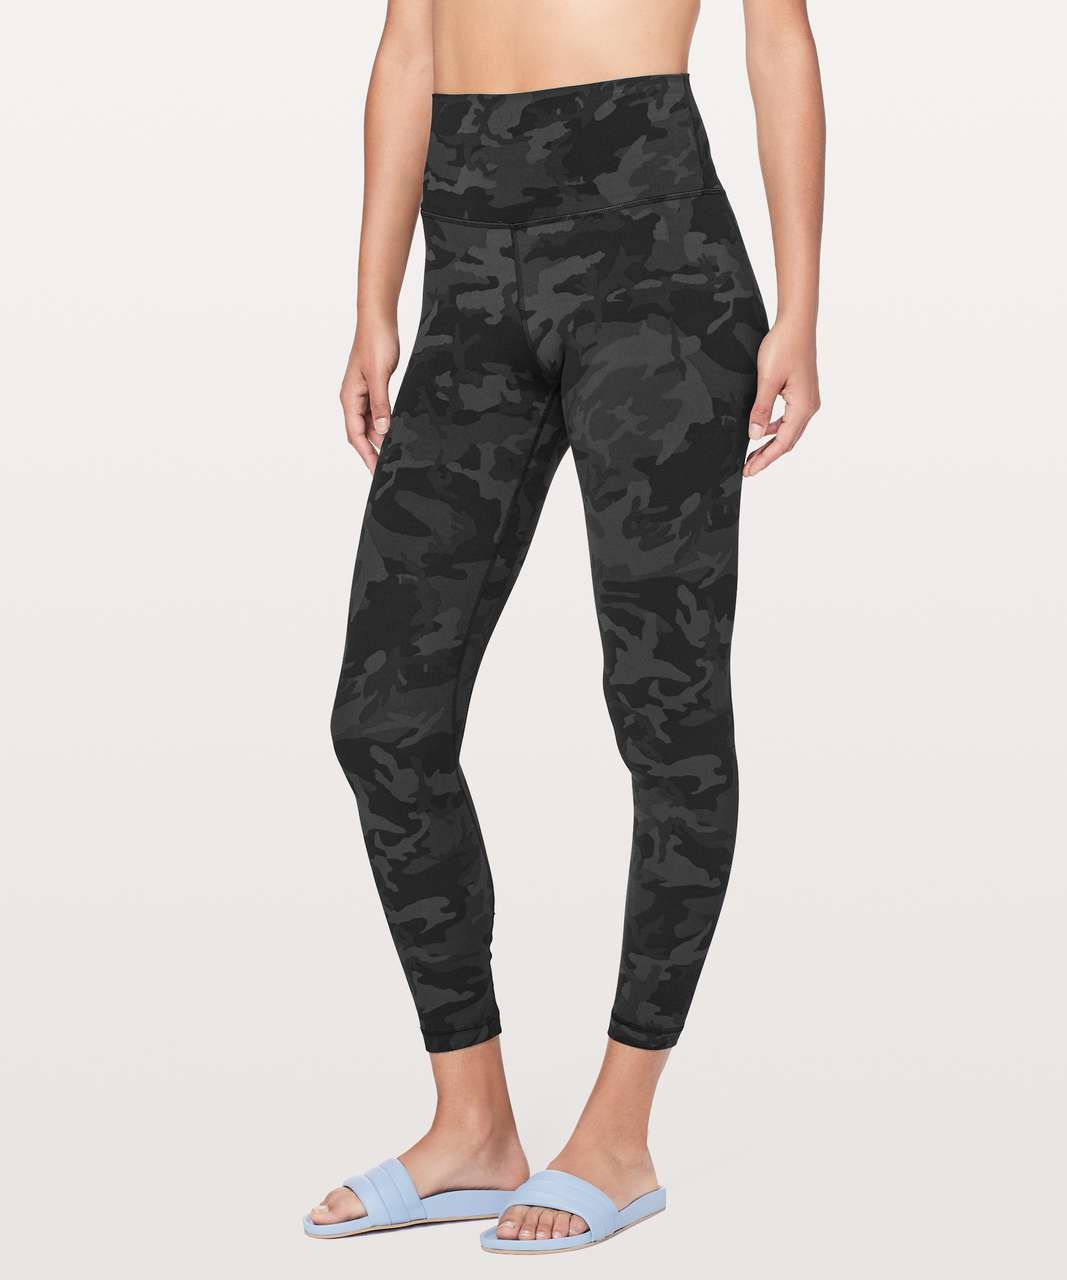 d9795351c61c5 Align pant II (I wear size 6 in Lululemon leggings), Incognito Camo Multi  Grey